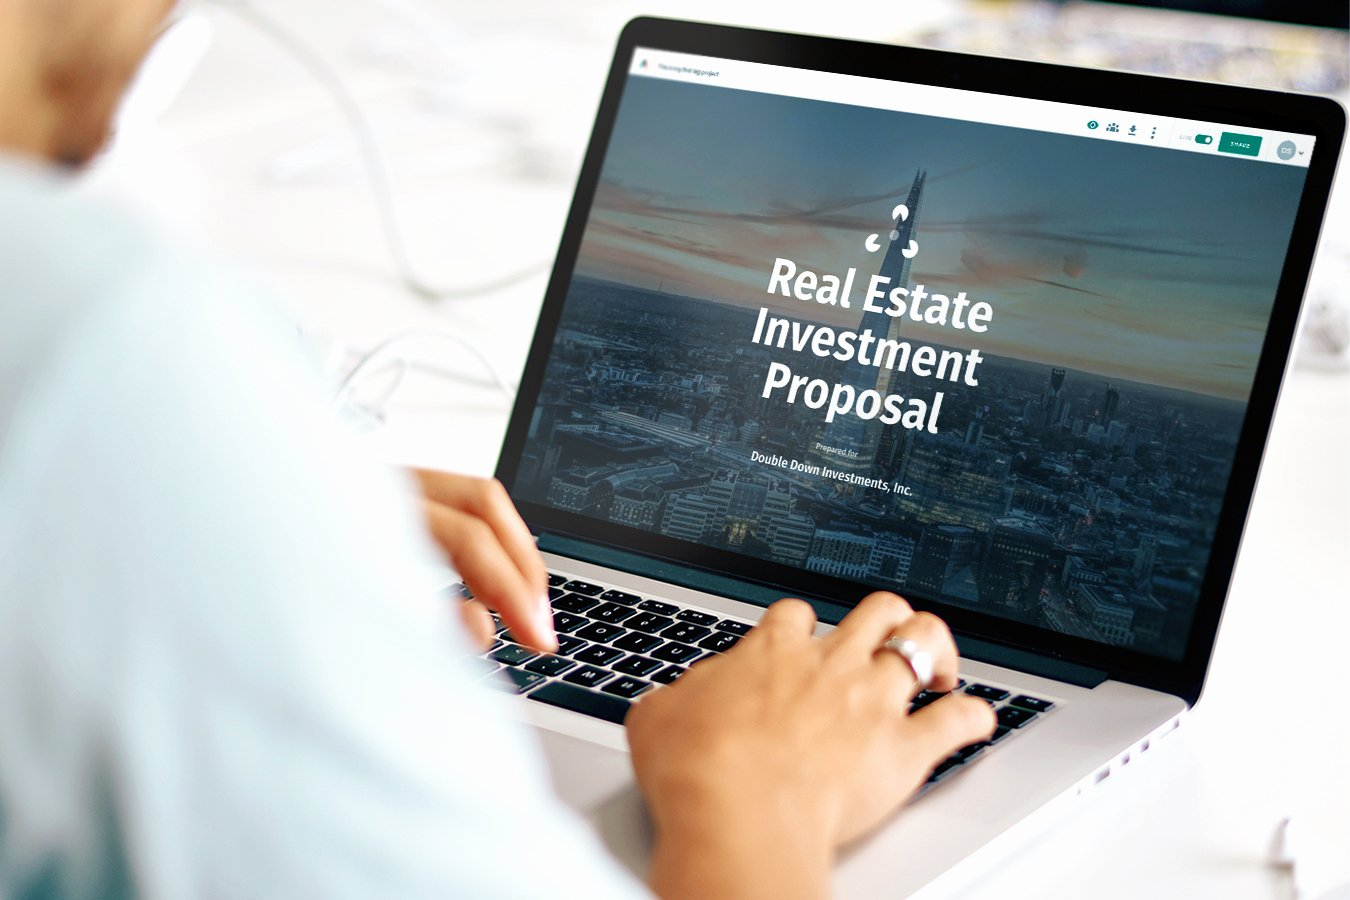 Real Estate Investment Proposal Template Unique Real Estate Investment Proposal Template Professional